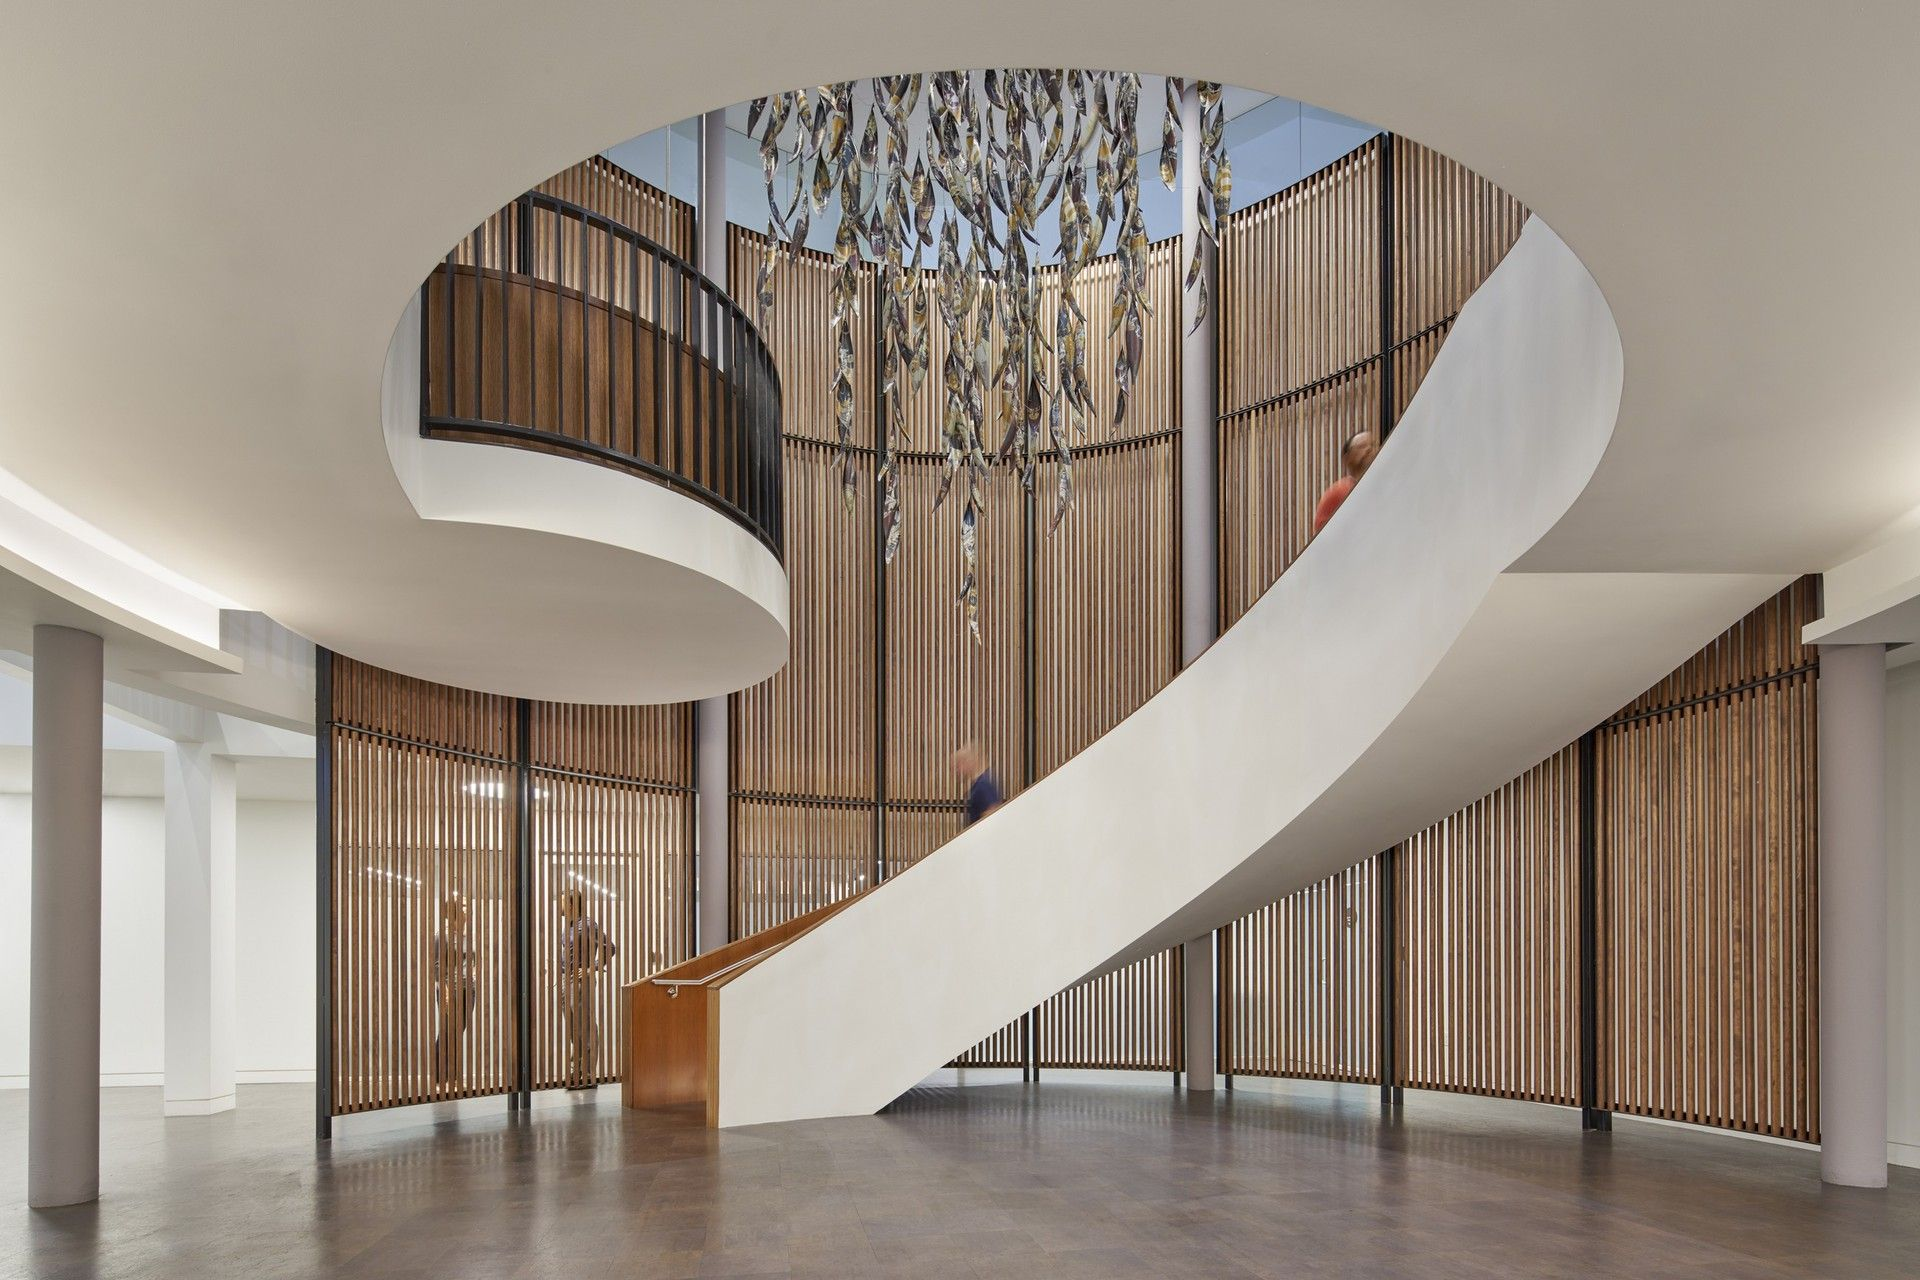 KAPOR CENTER FOR SOCIAL IMPACT by Fougeron Architecture